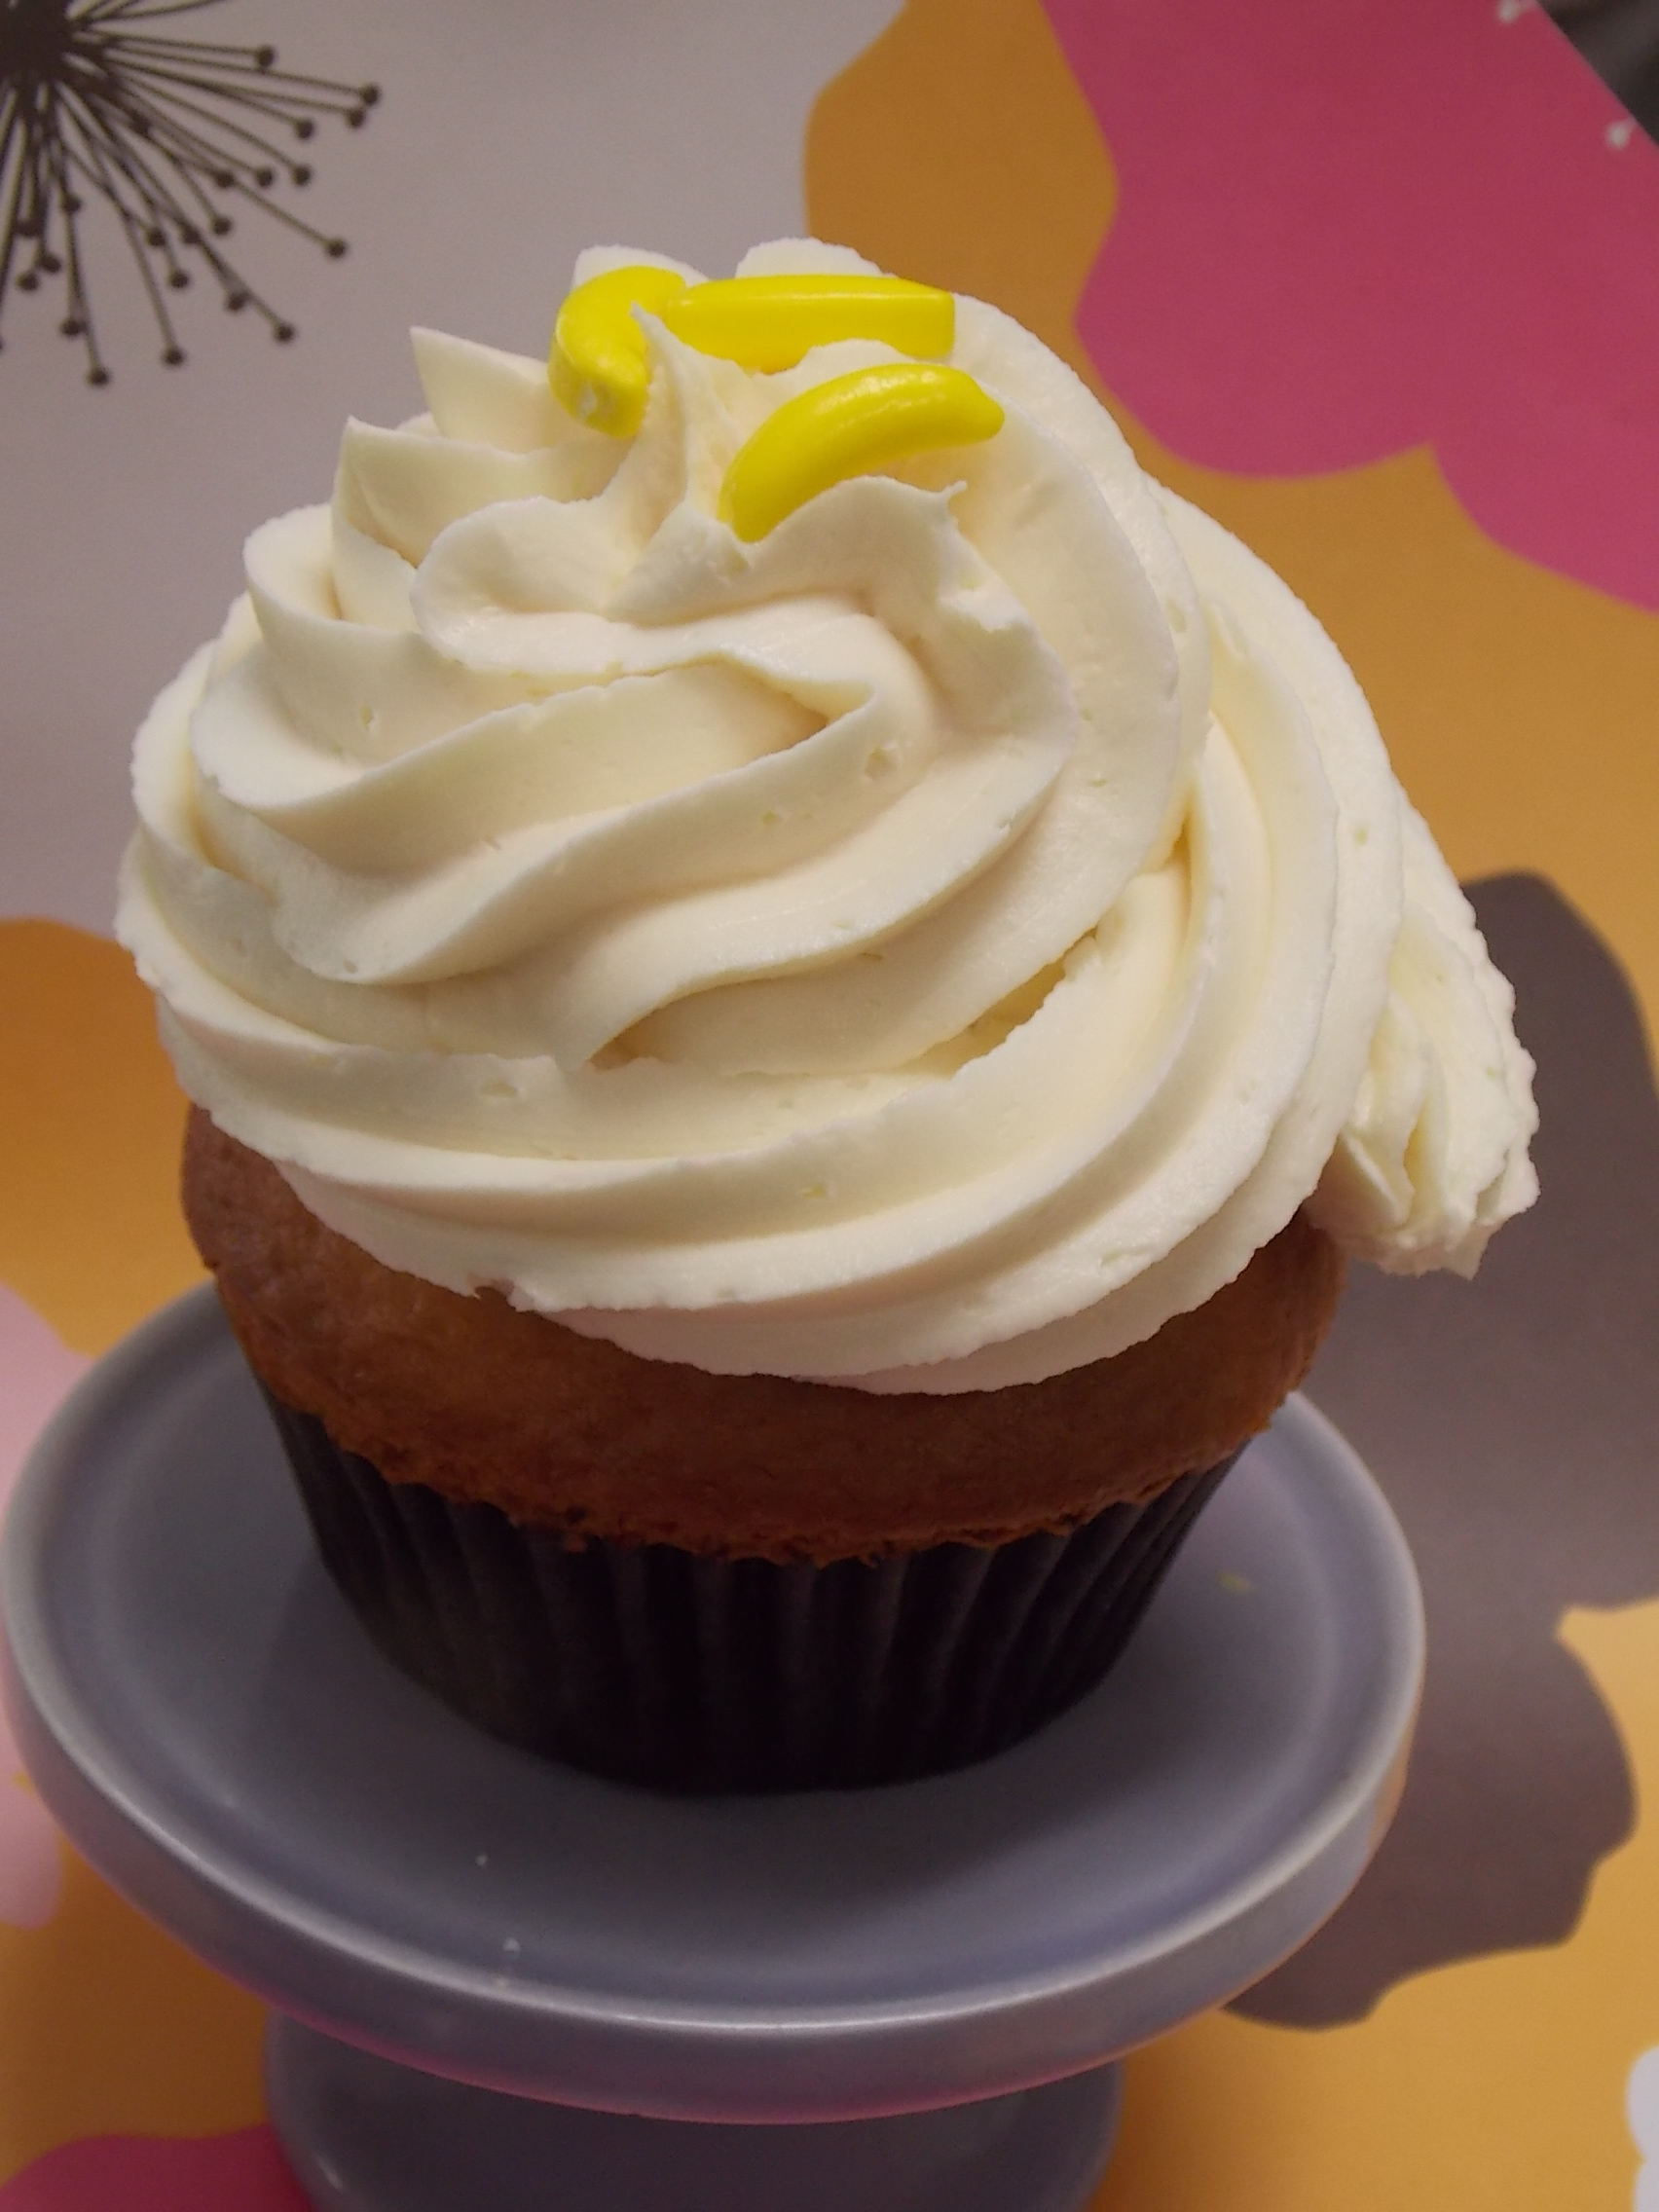 Mango Ban-ango-A Mango cupcake topped with a creamy banana buttercream and a few banana candies for the top